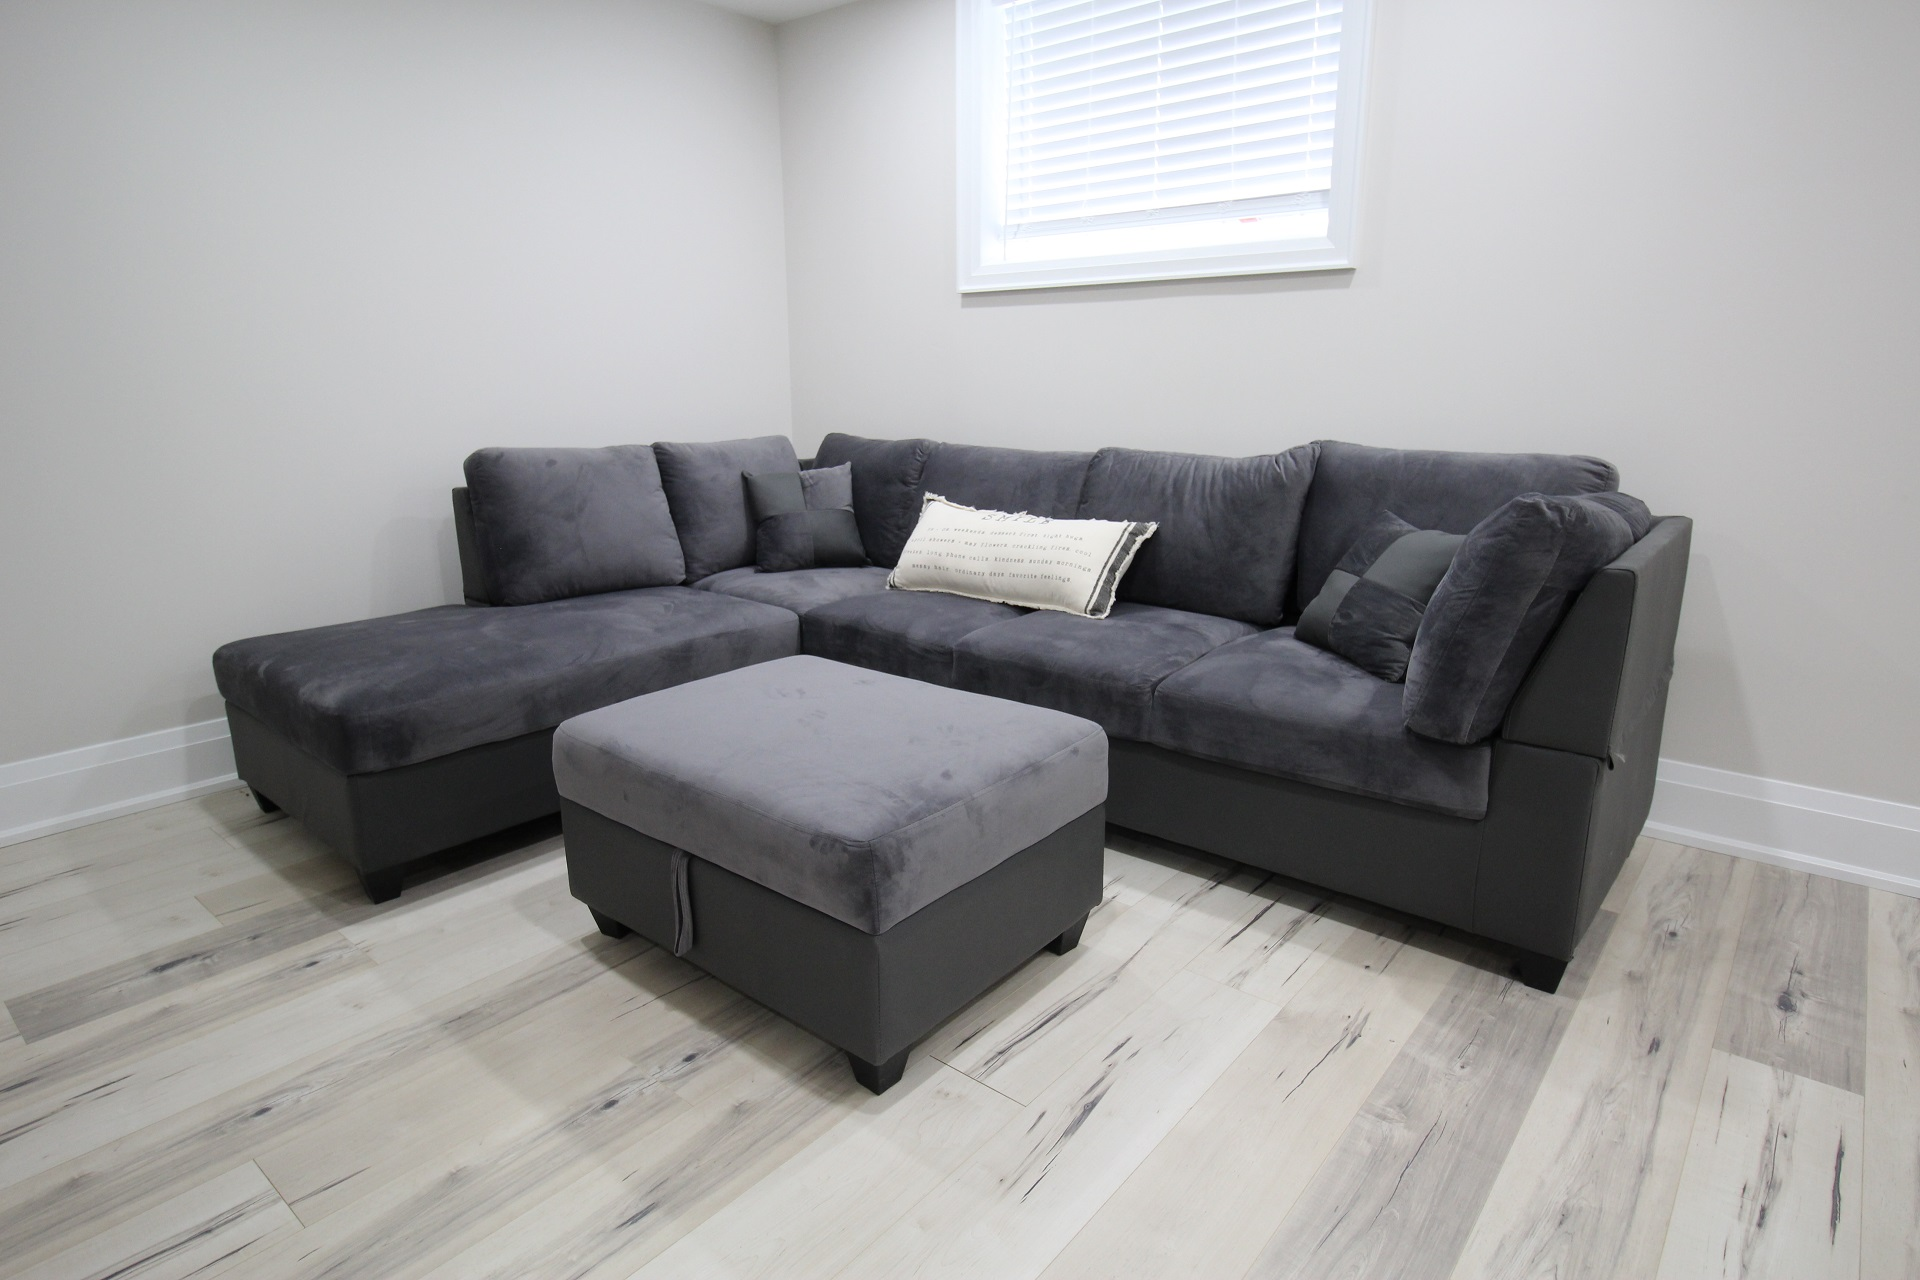 Crystal Clear Cottage - basement seating - Crystal Beach - HolidayHomesPropertyManagement